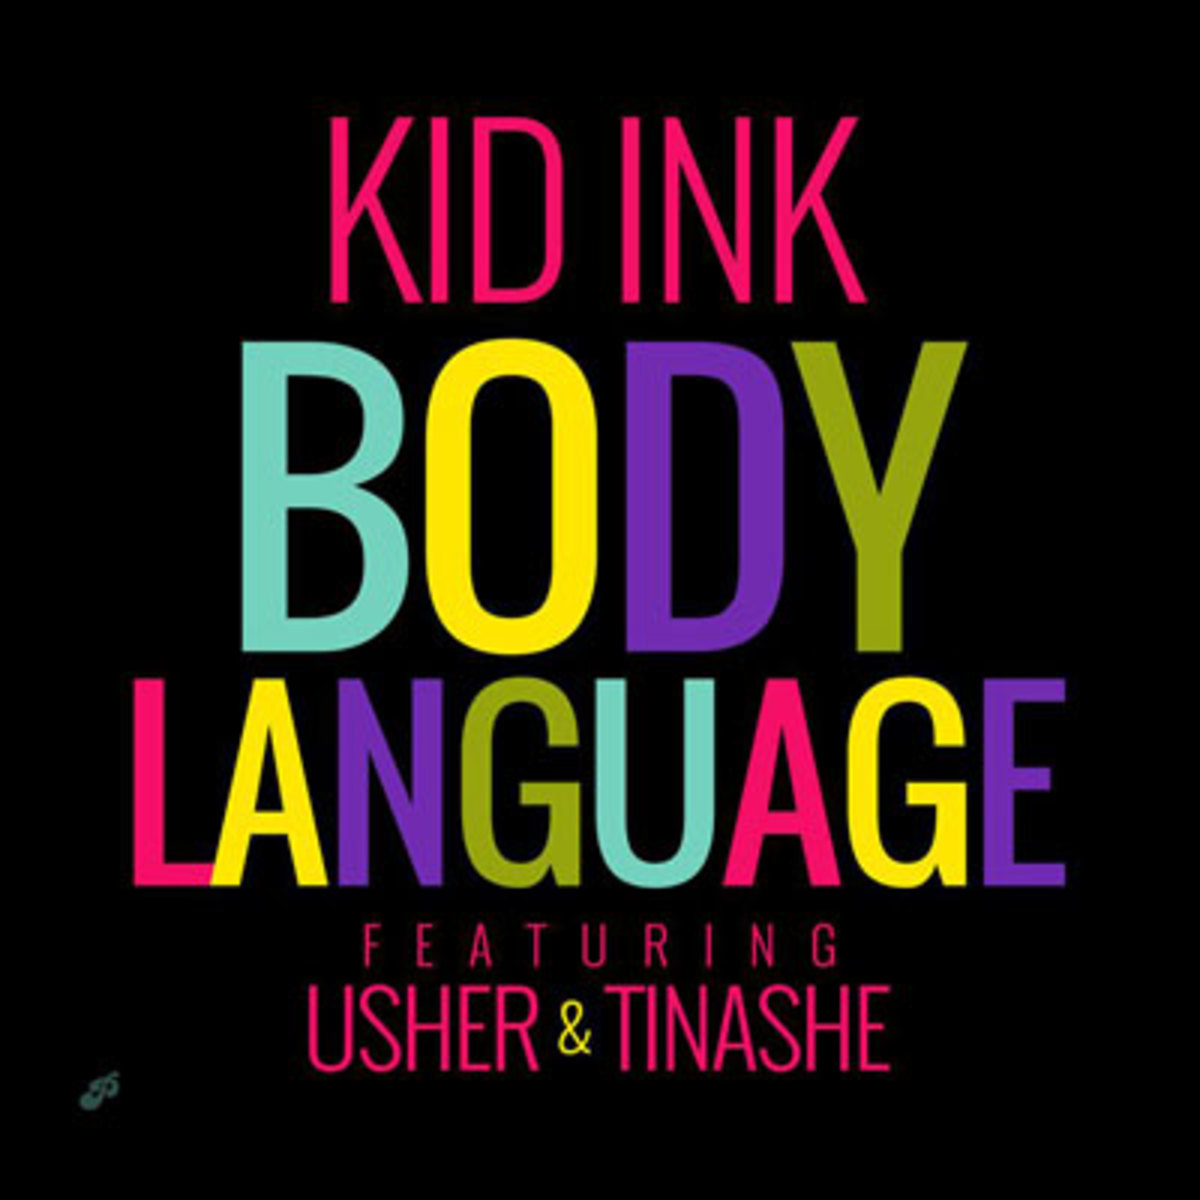 kidink-bodylanguage.jpg